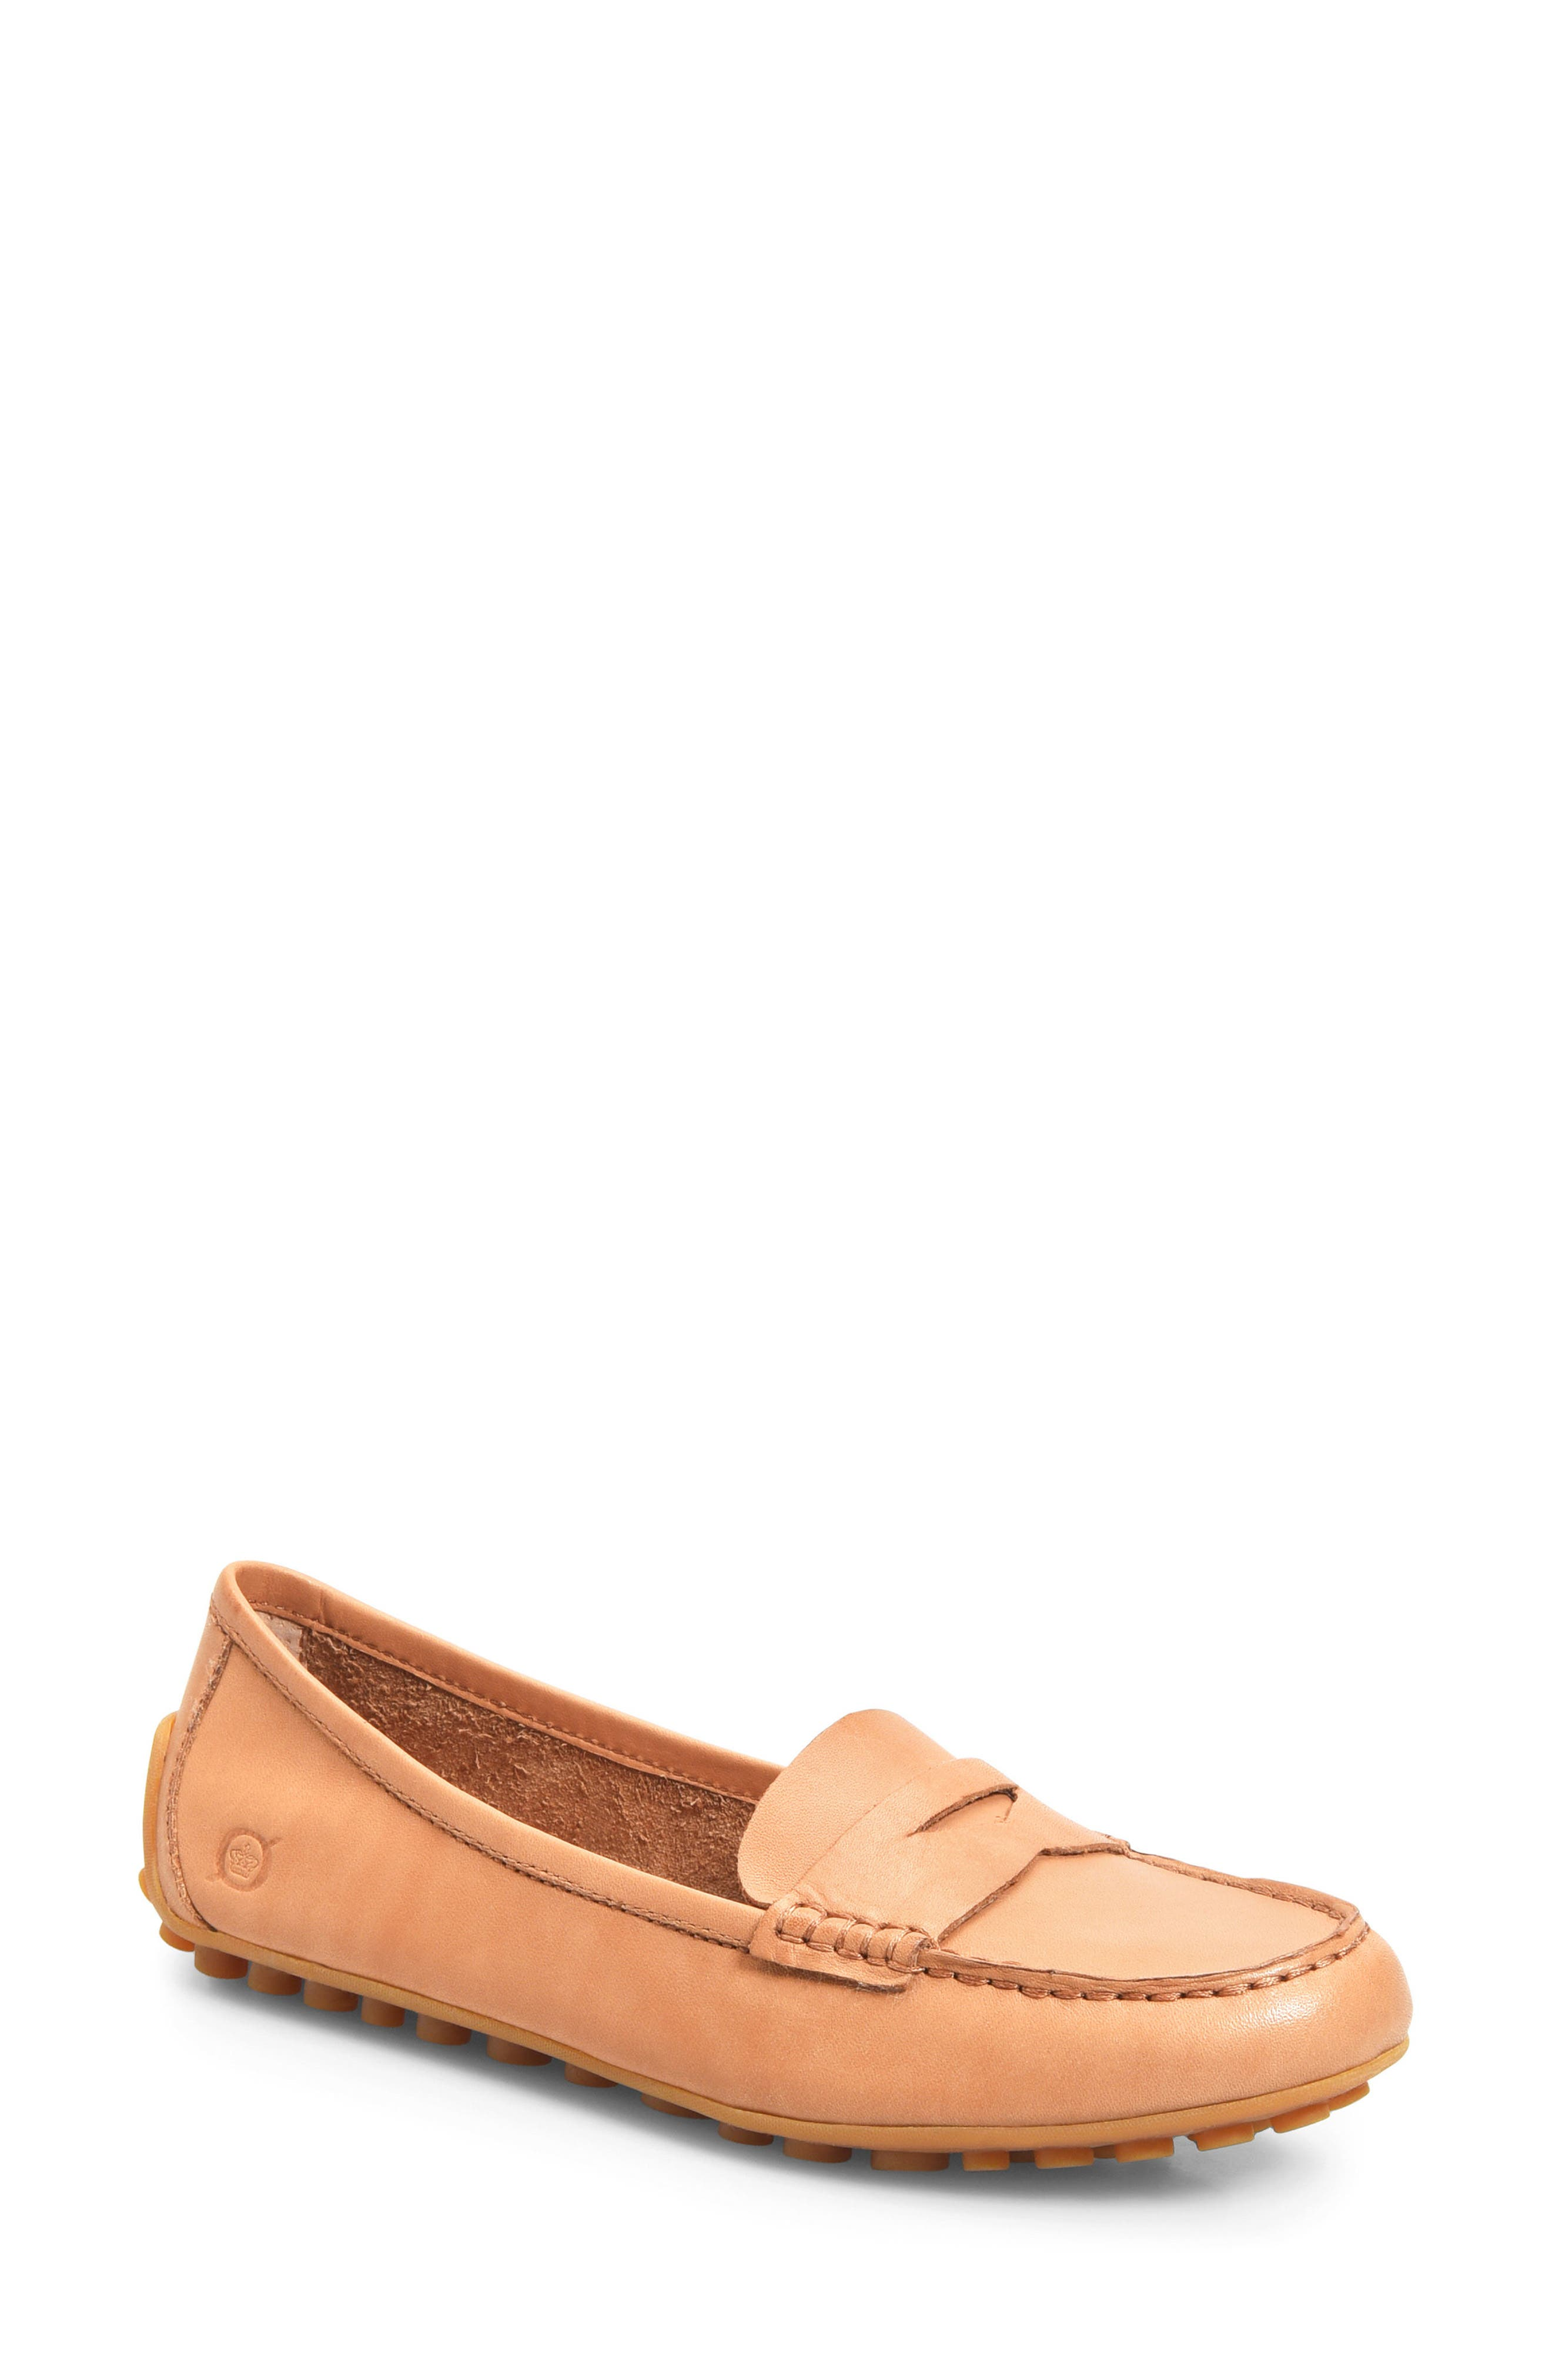 B?rn Malena Driving Loafer, Brown